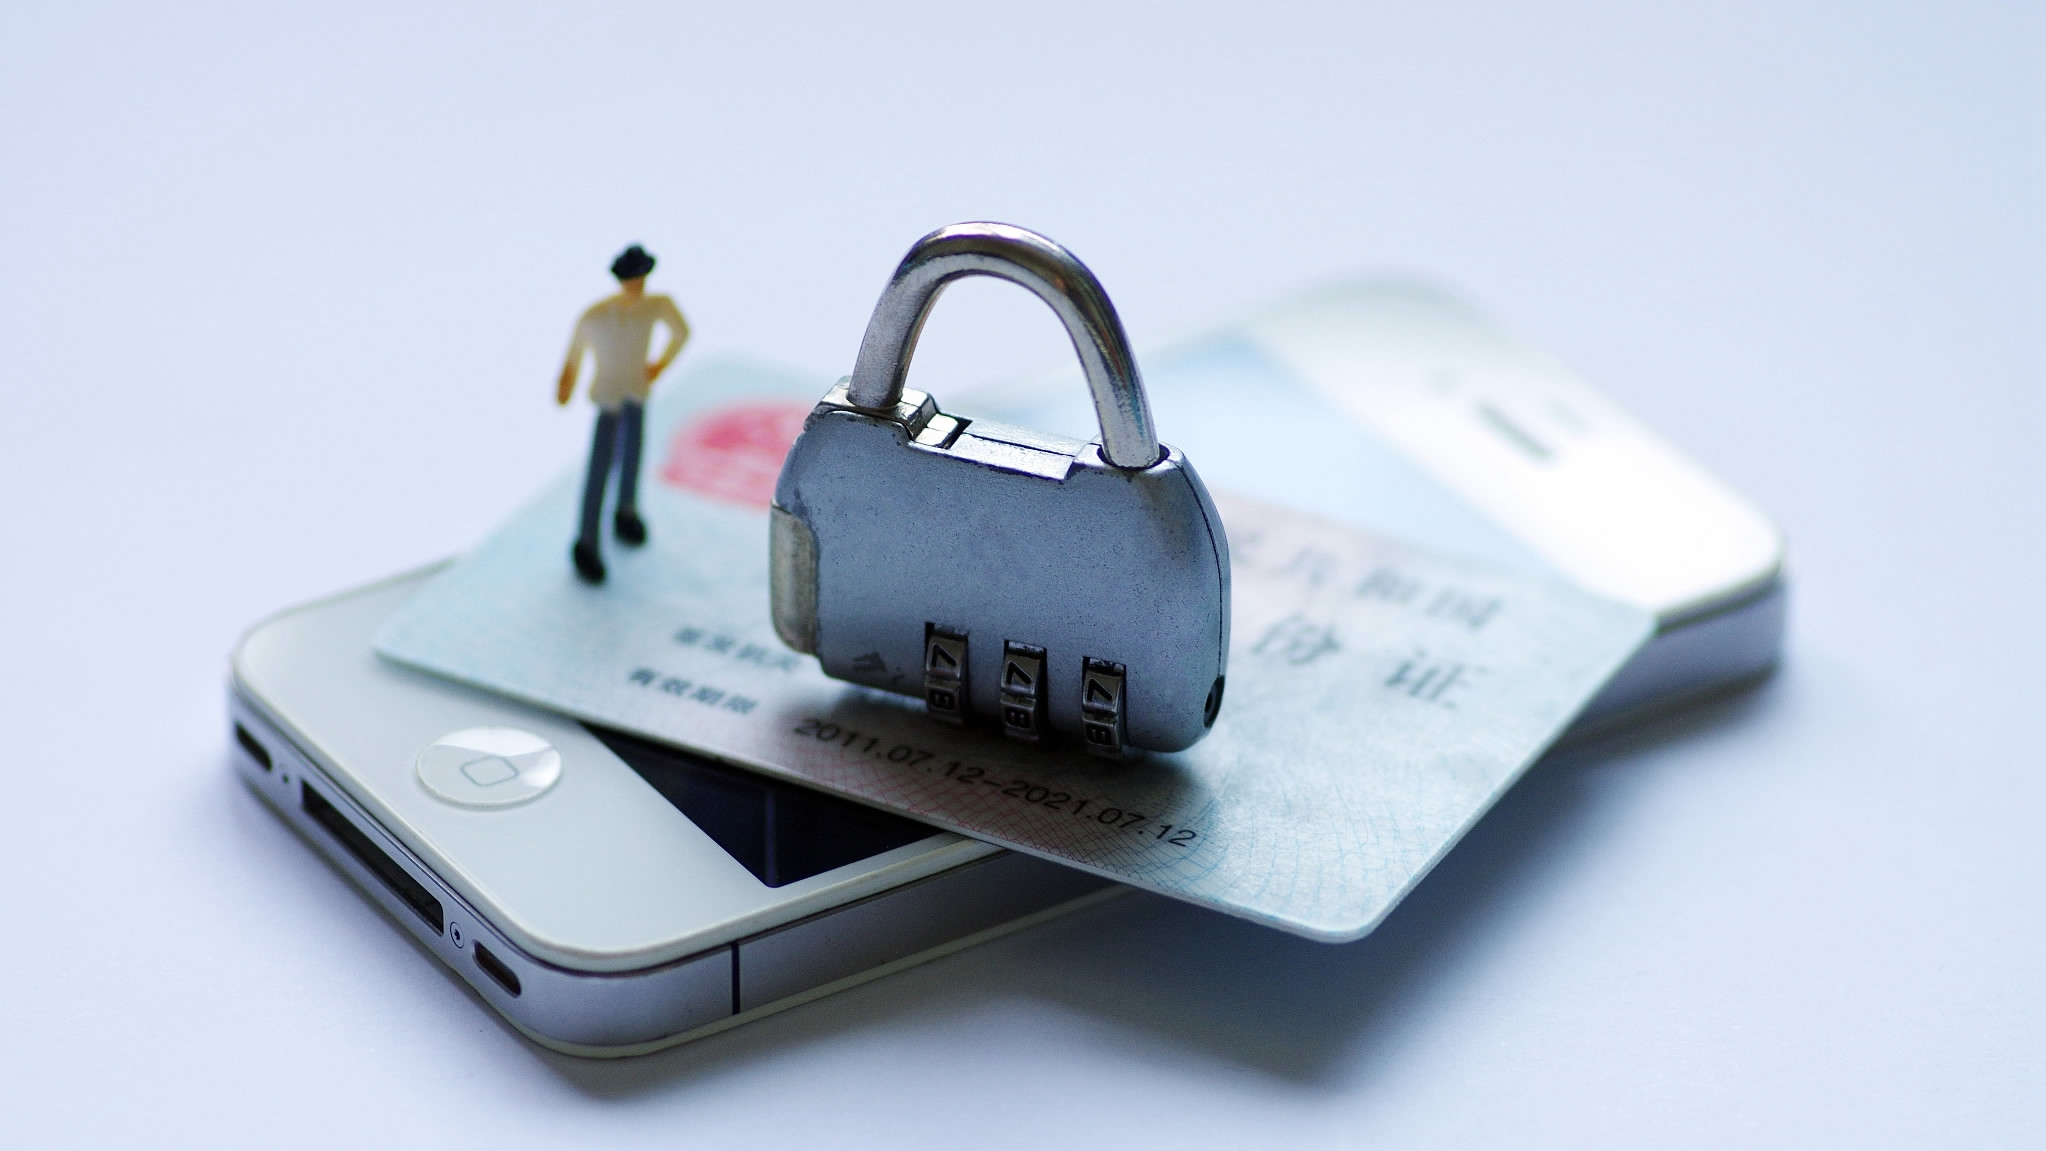 China accelerates personal data protection